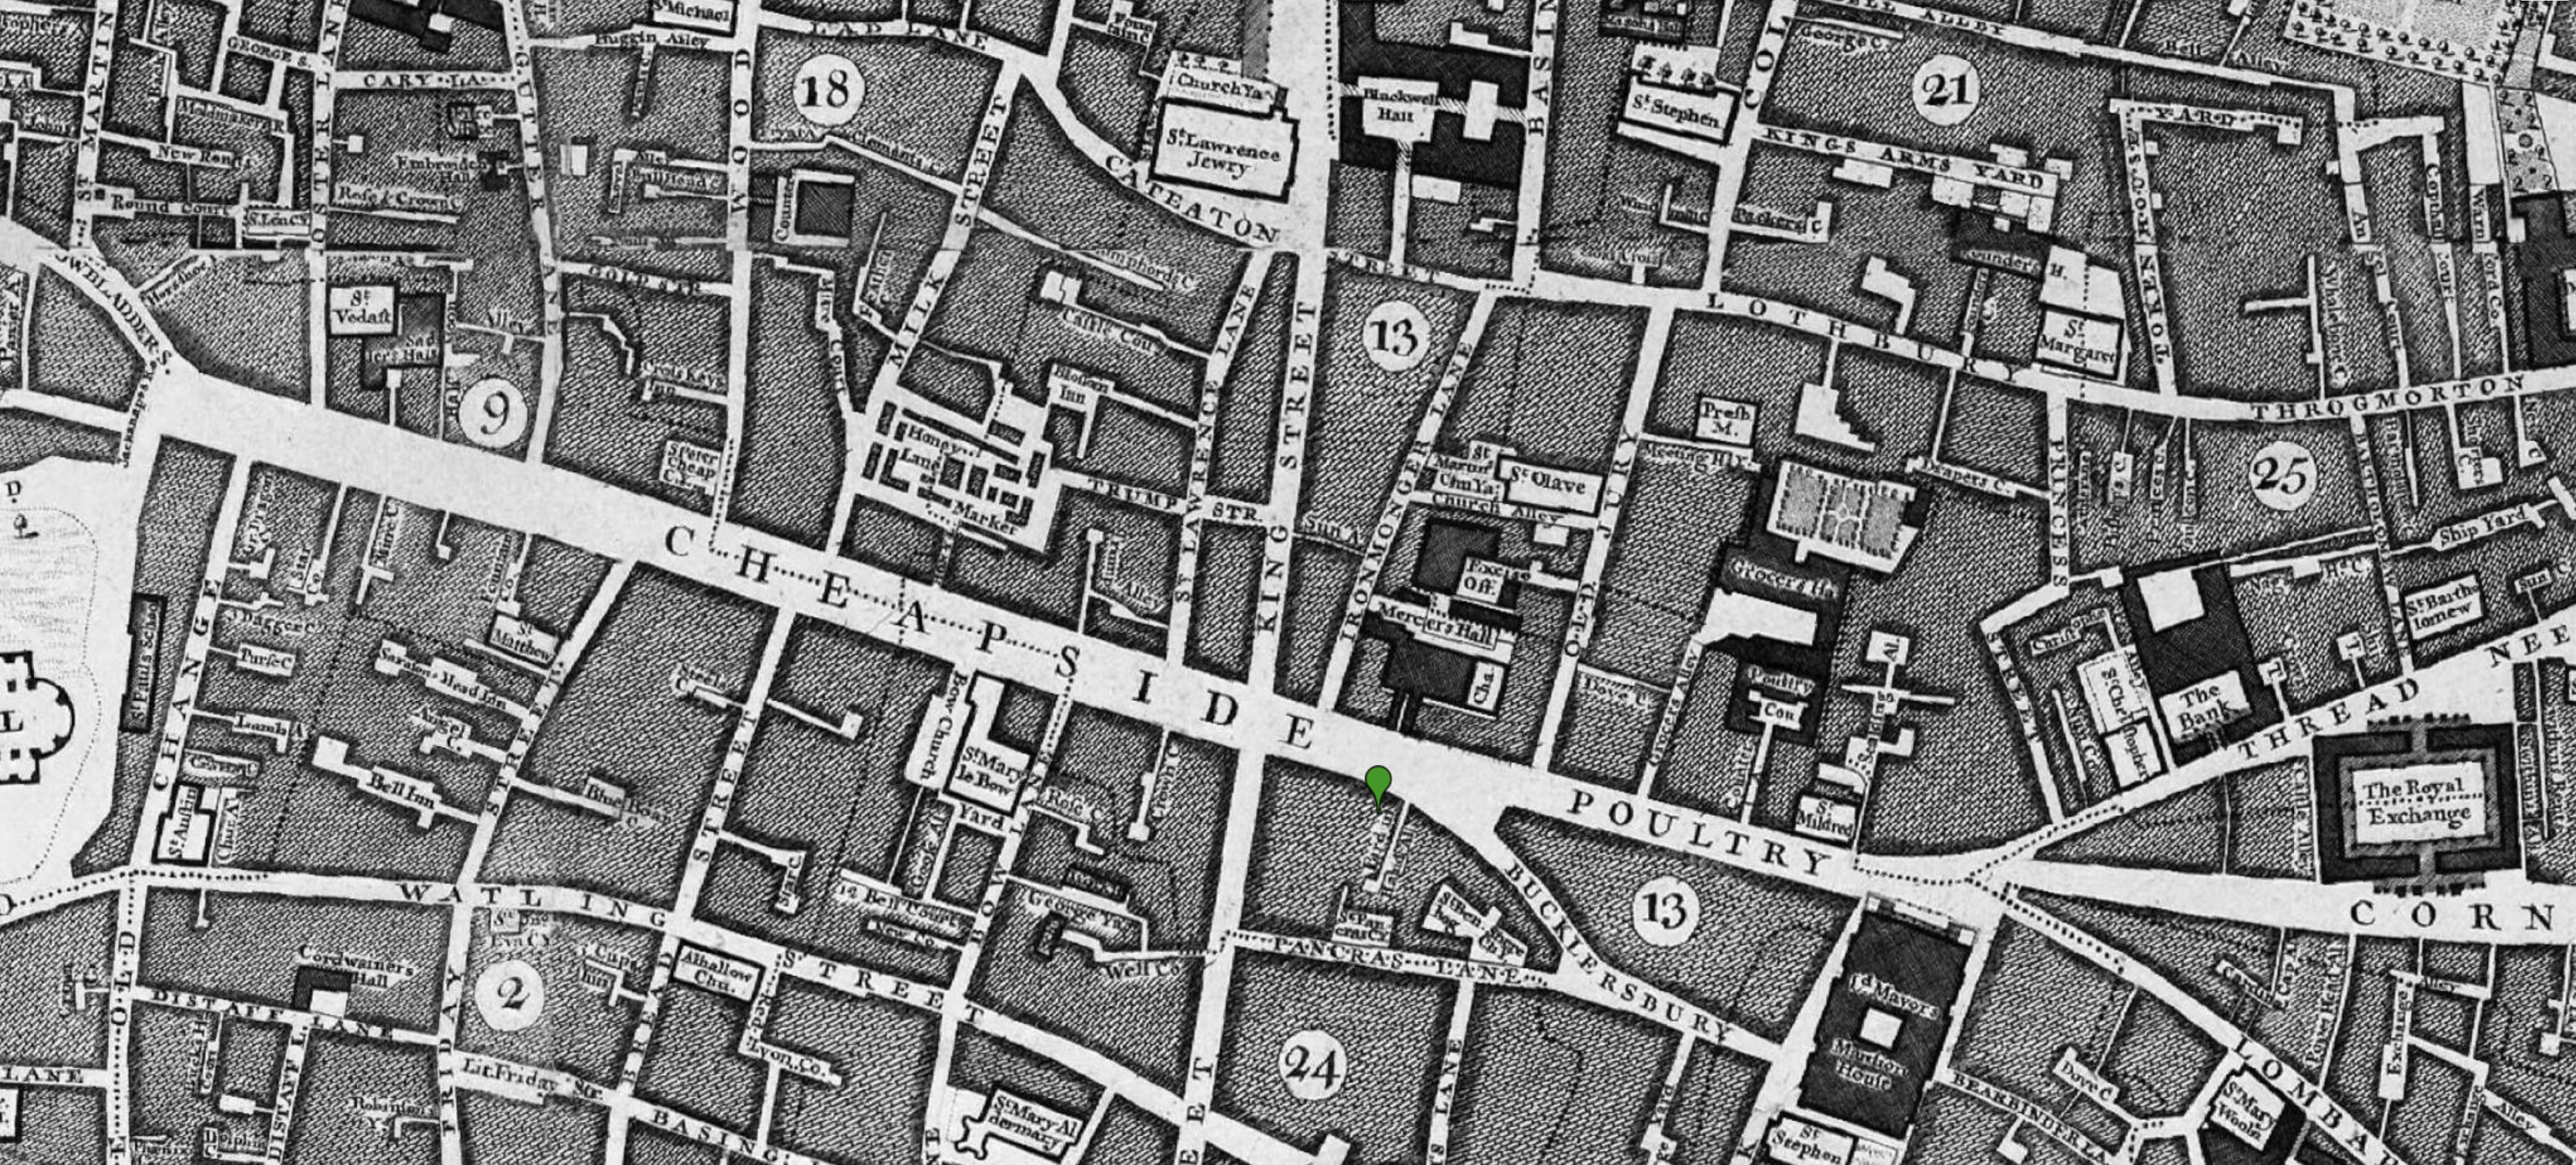 The scene of John Isaac Williams's crime, corner of Cheapside and King, & Bird-in-Hand Court